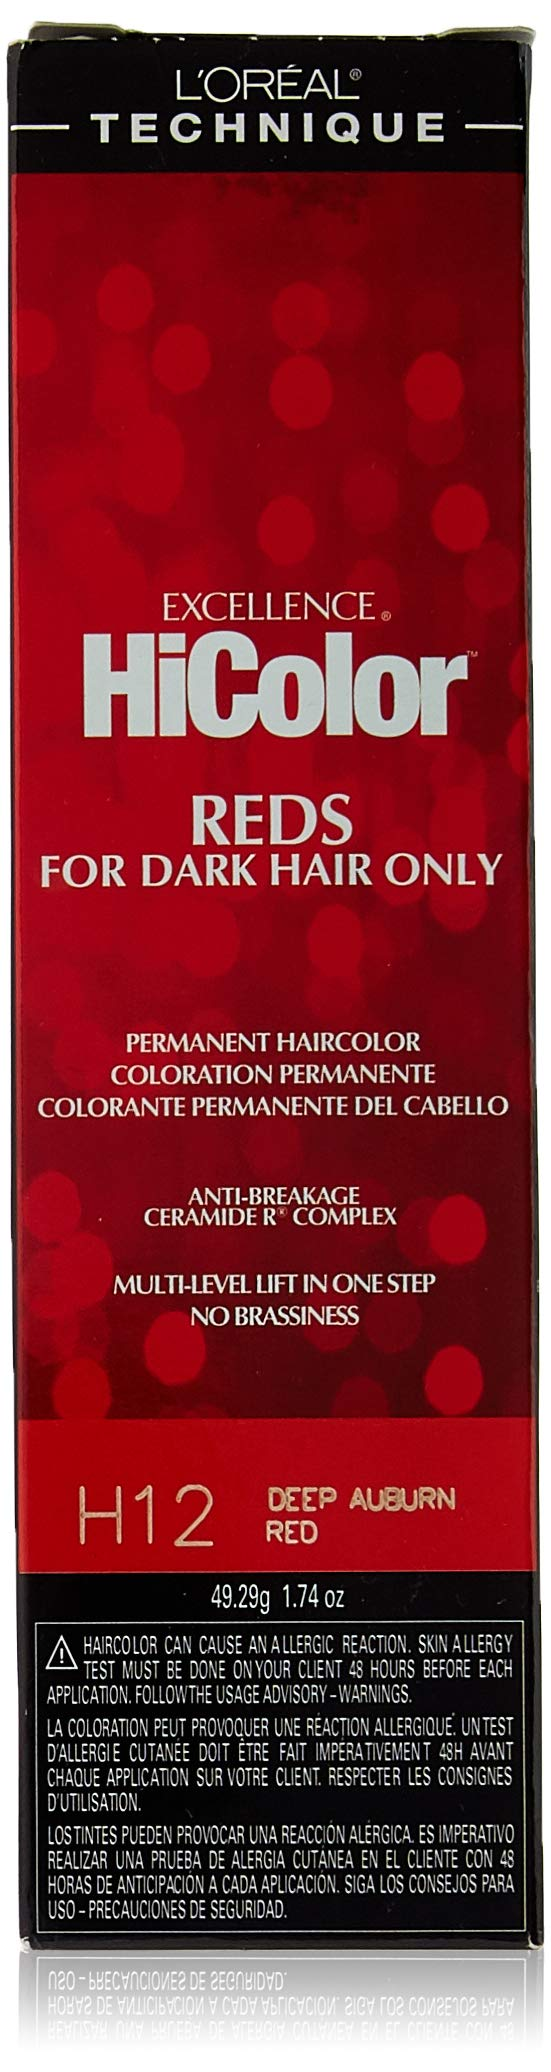 L'Oreal Paris Excellence HiColor Permanent Haircolor, Deep Auburn Red, 1.74 Ounce